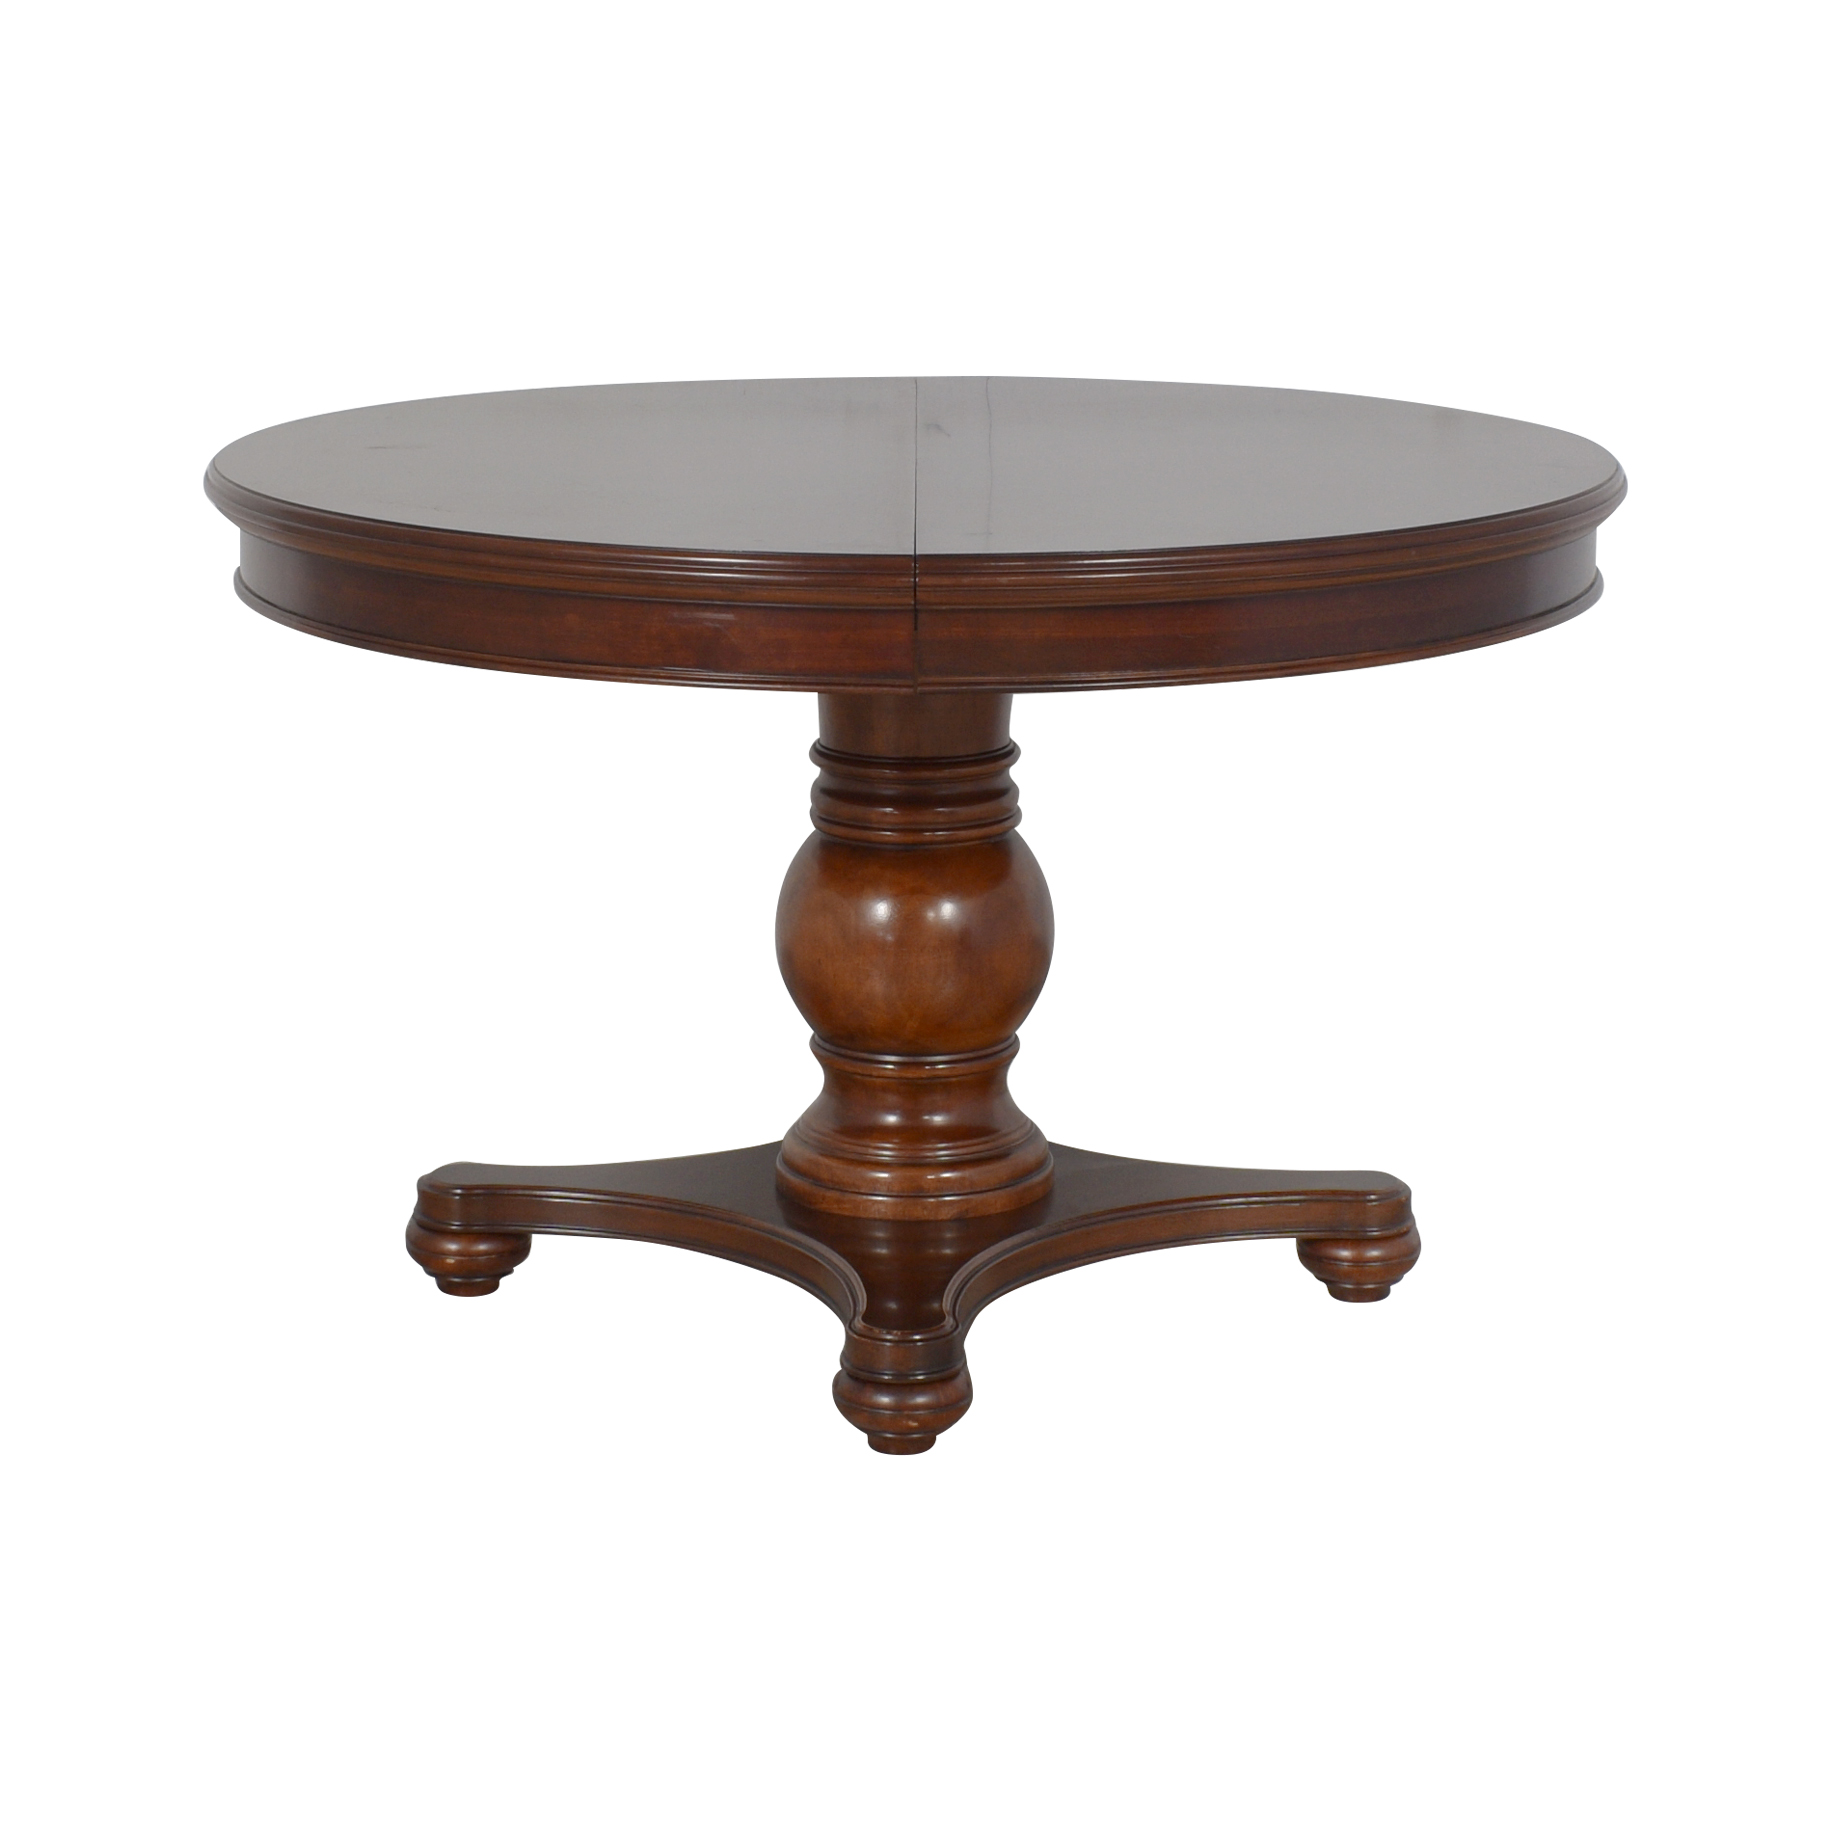 Macy's Macy's Extendable Dining Table discount